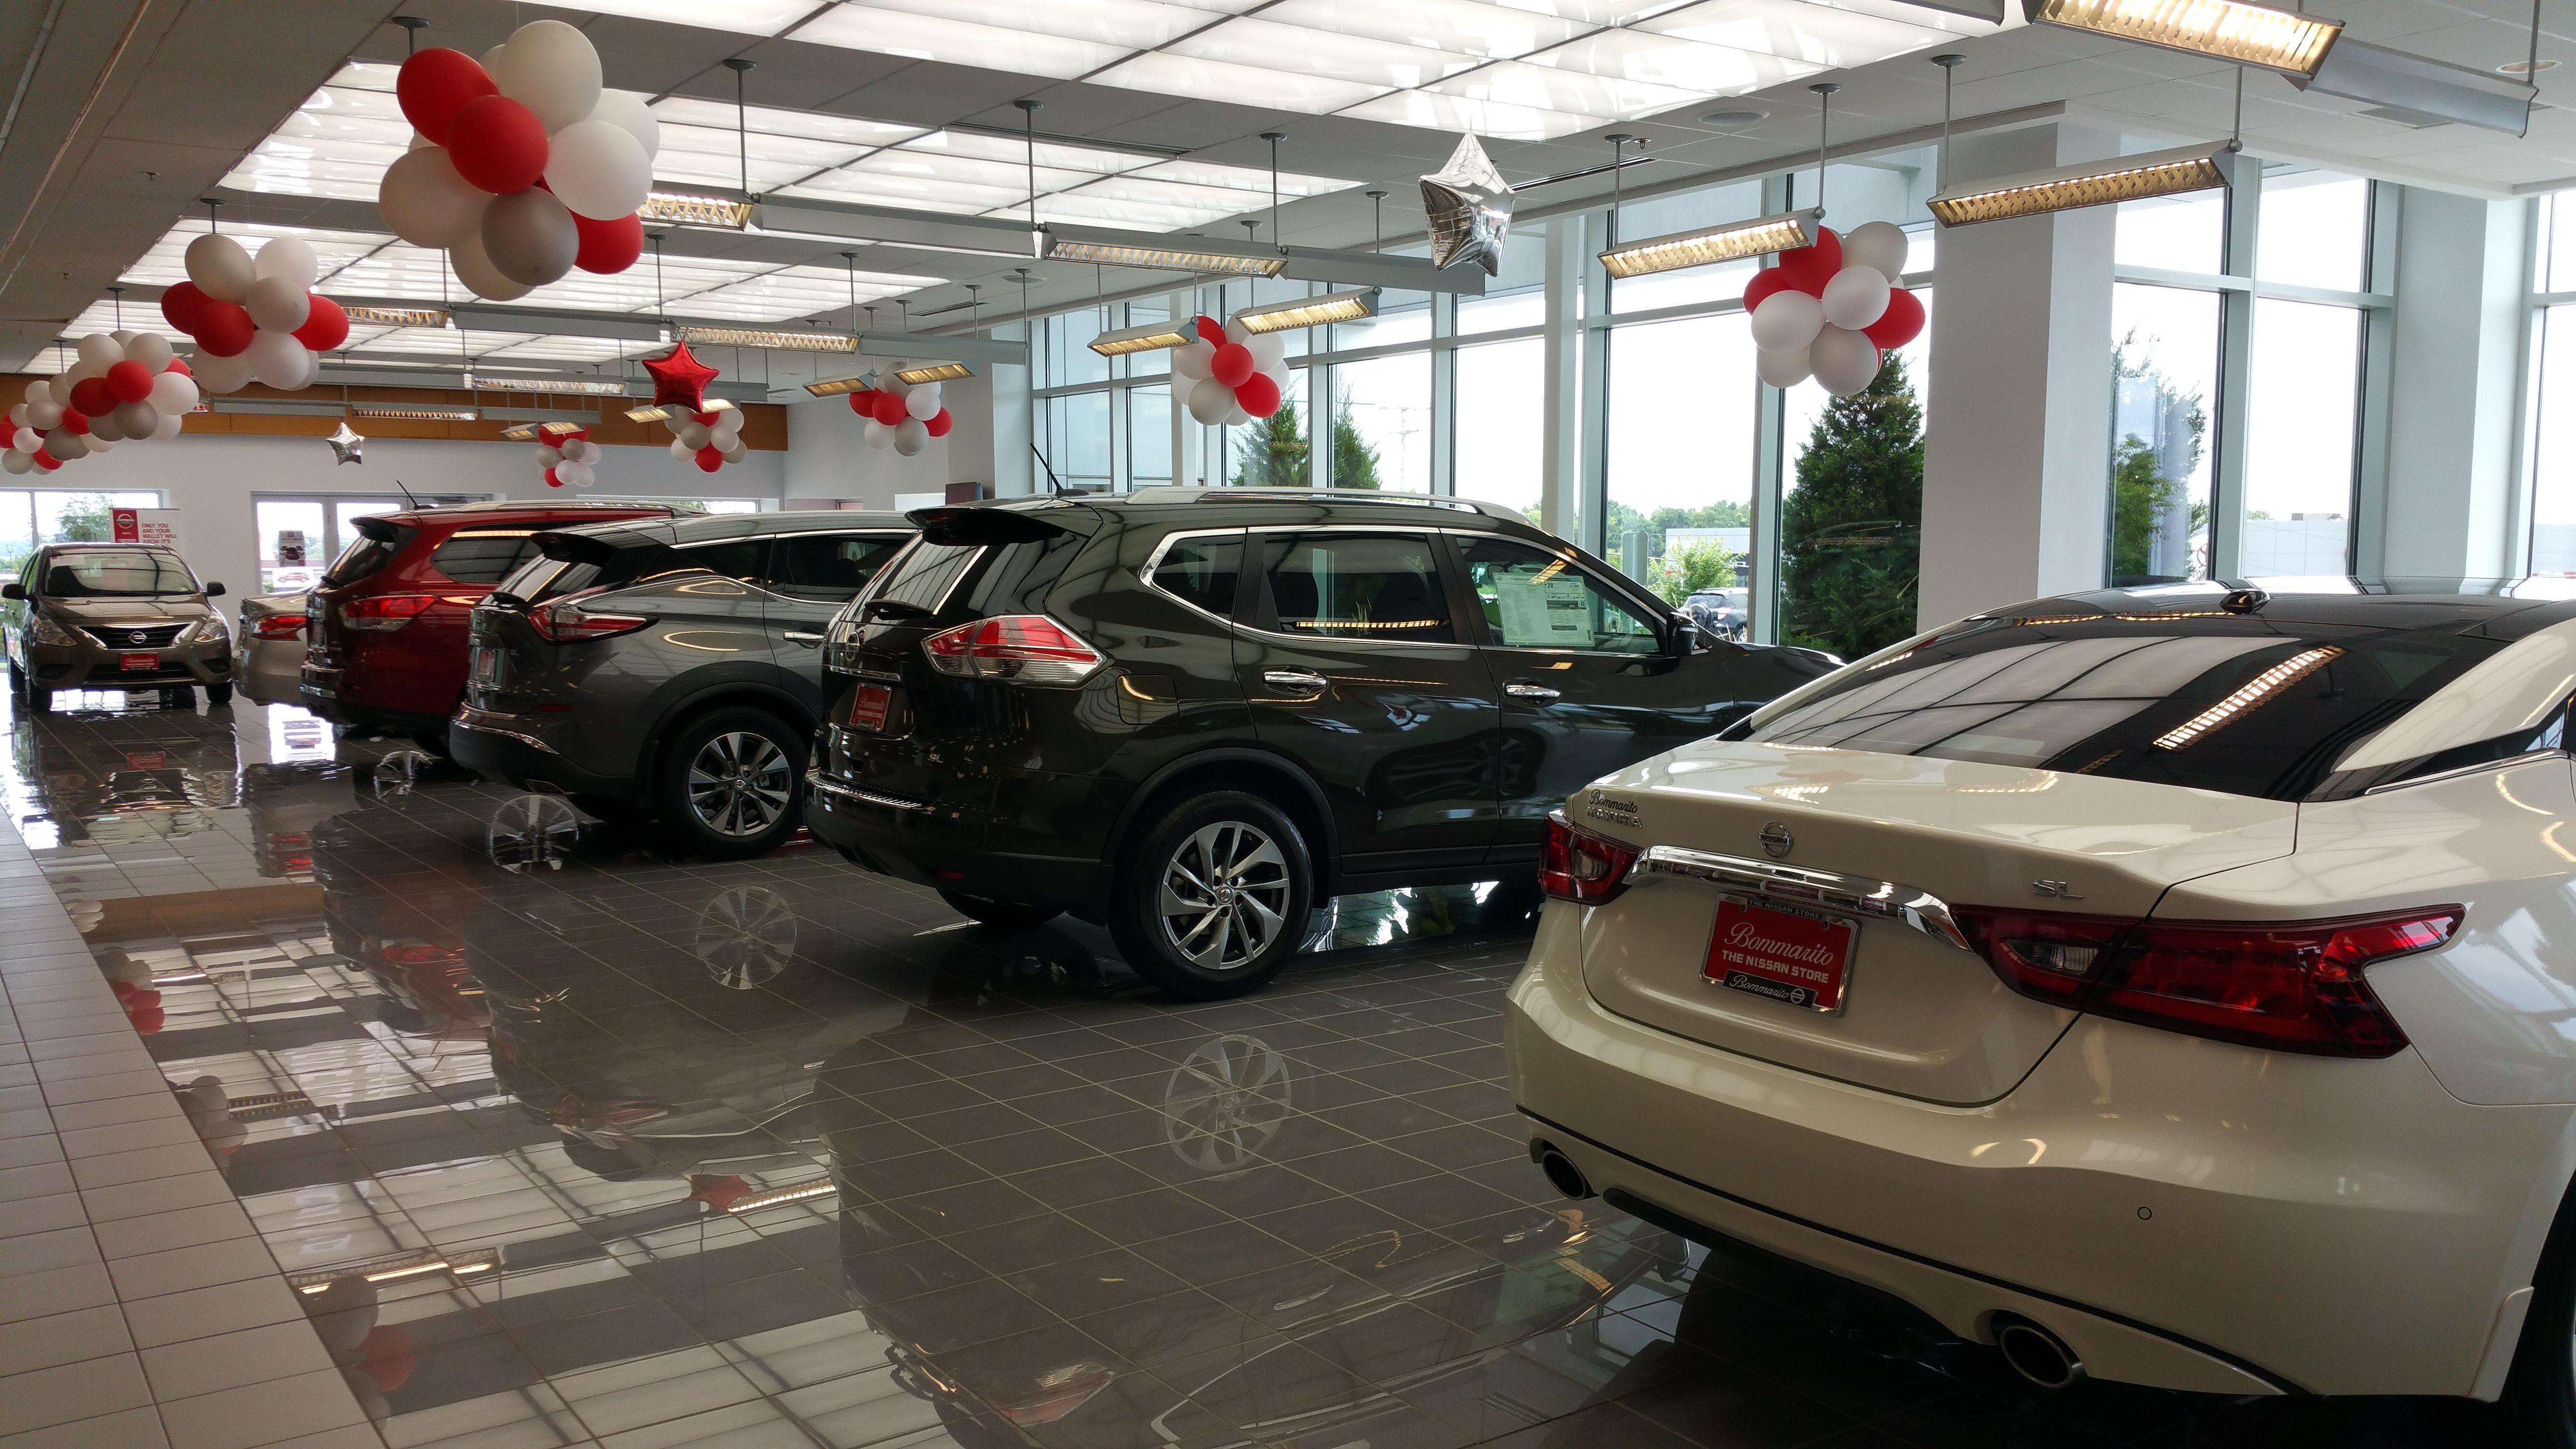 Bommarito Nissan West State of the art showroom located in West County in St. Louis, MO